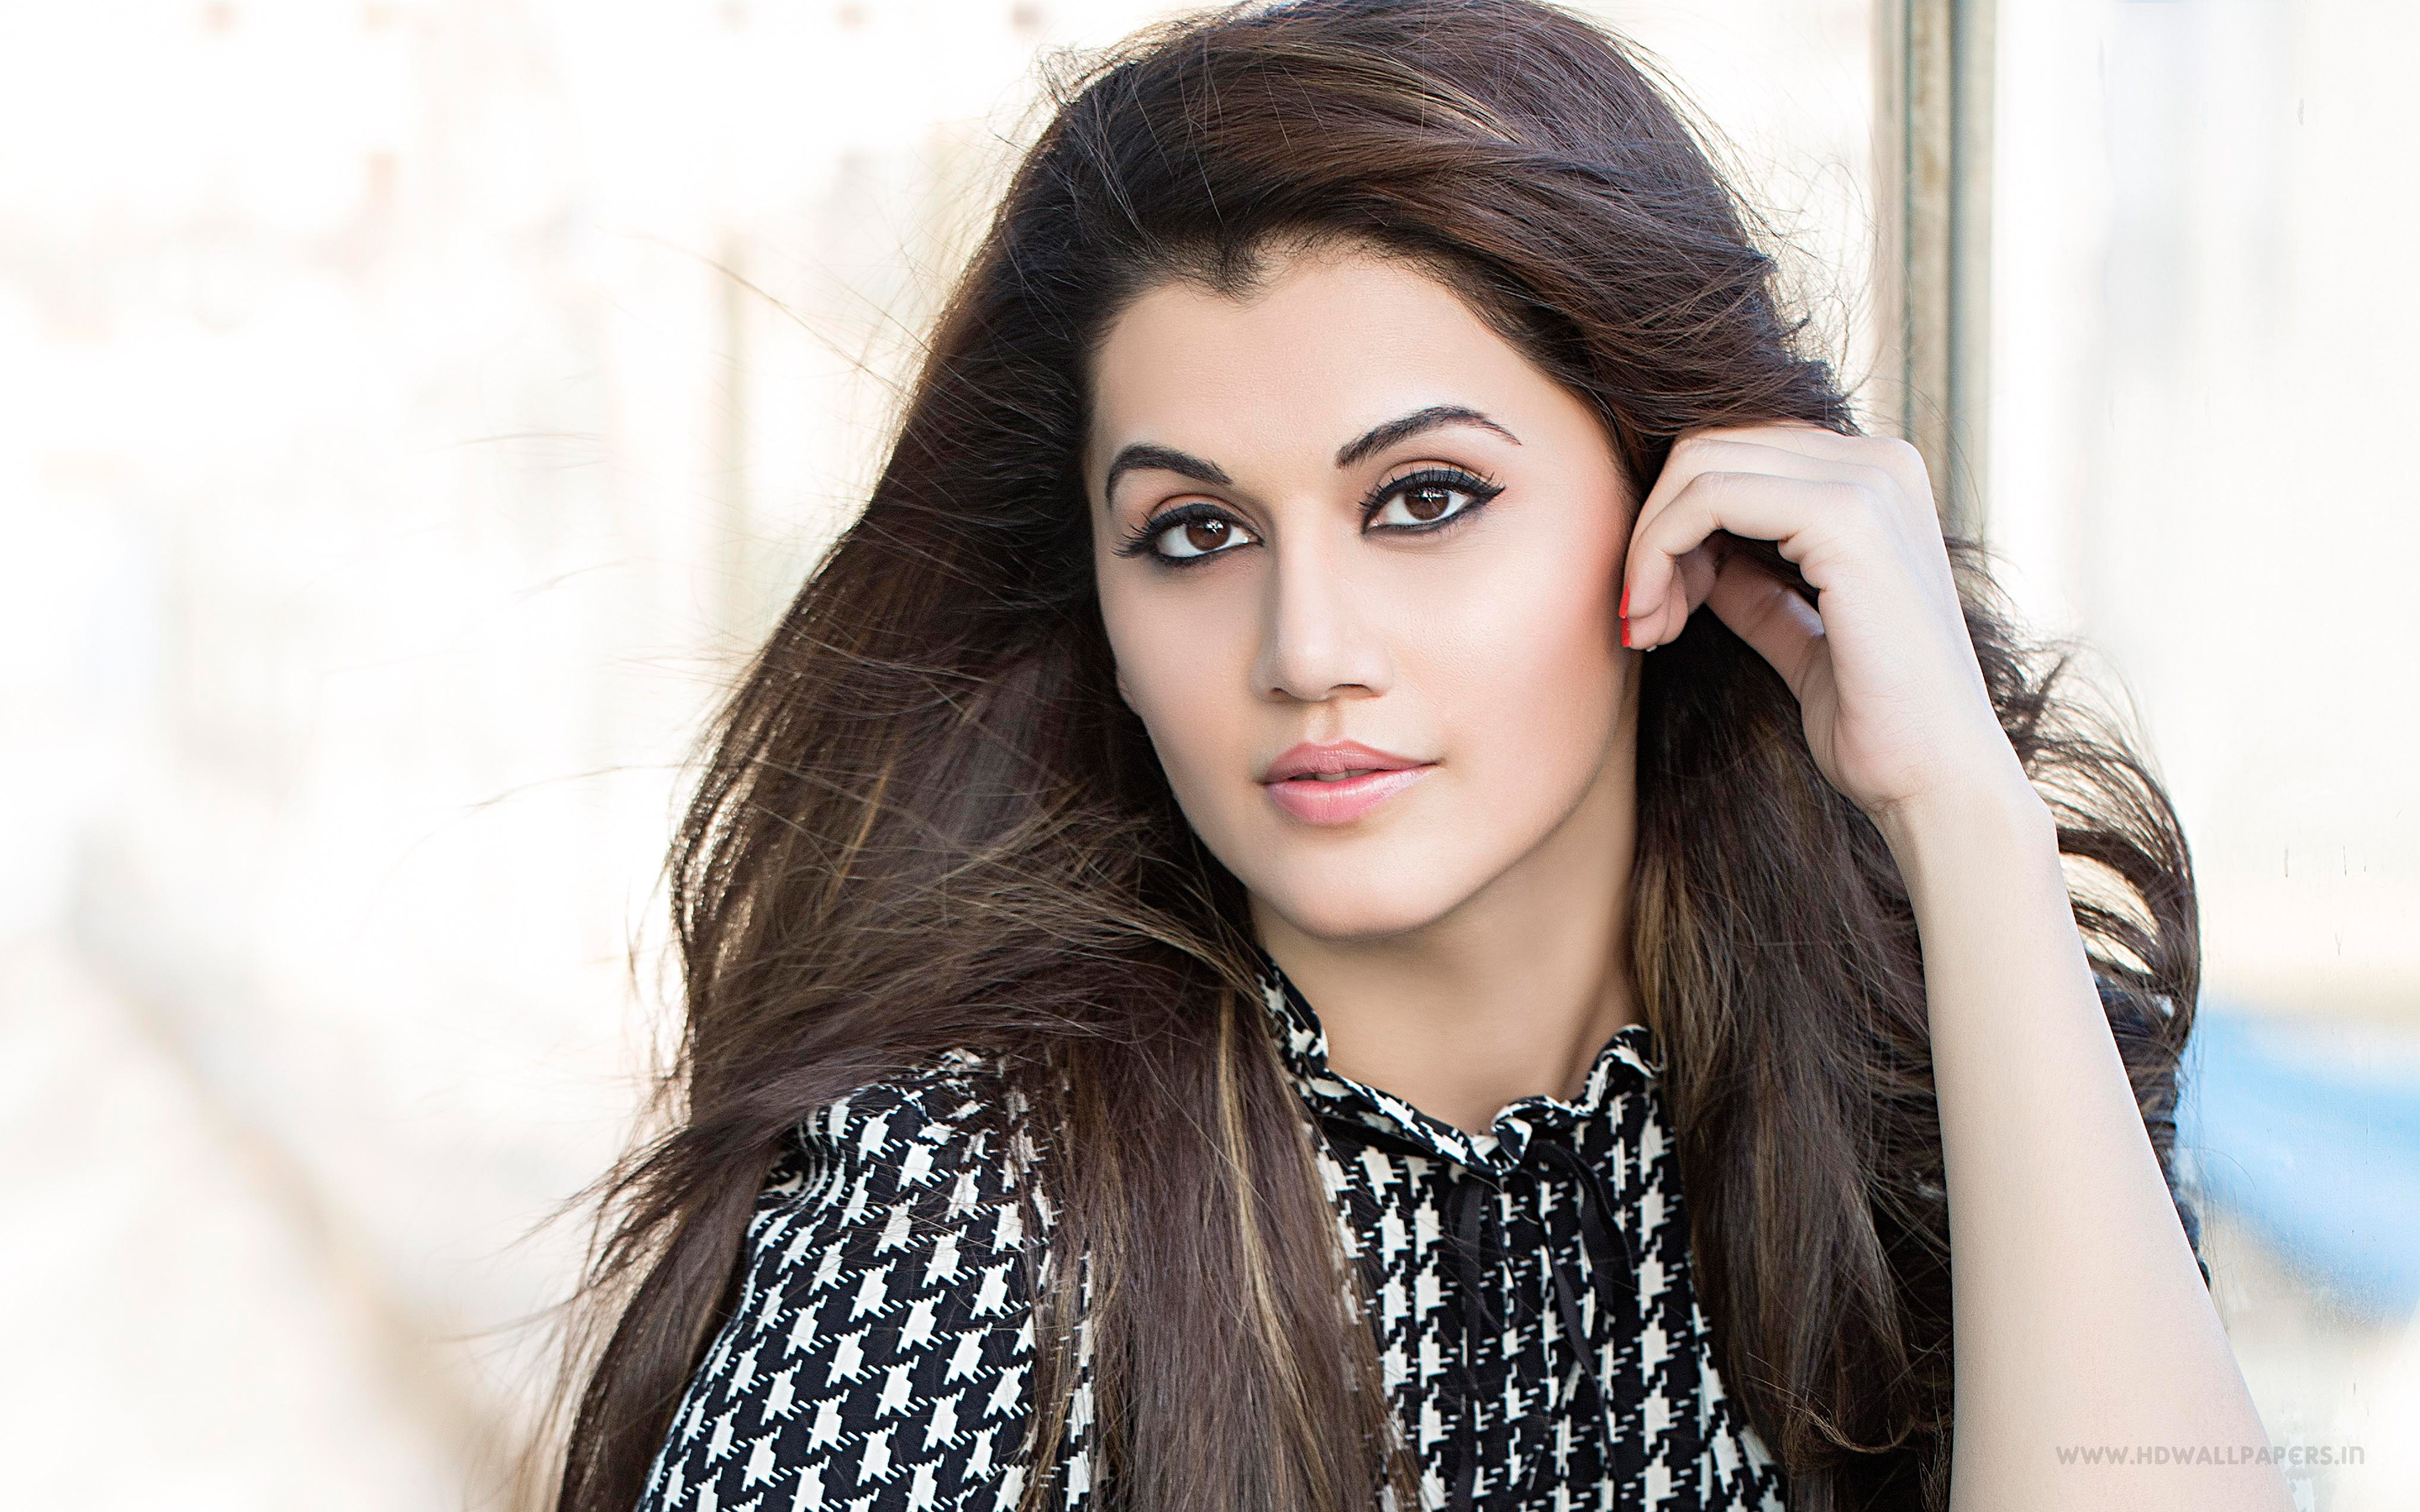 HQ Taapsee Pannu Wallpapers | File 1871.93Kb